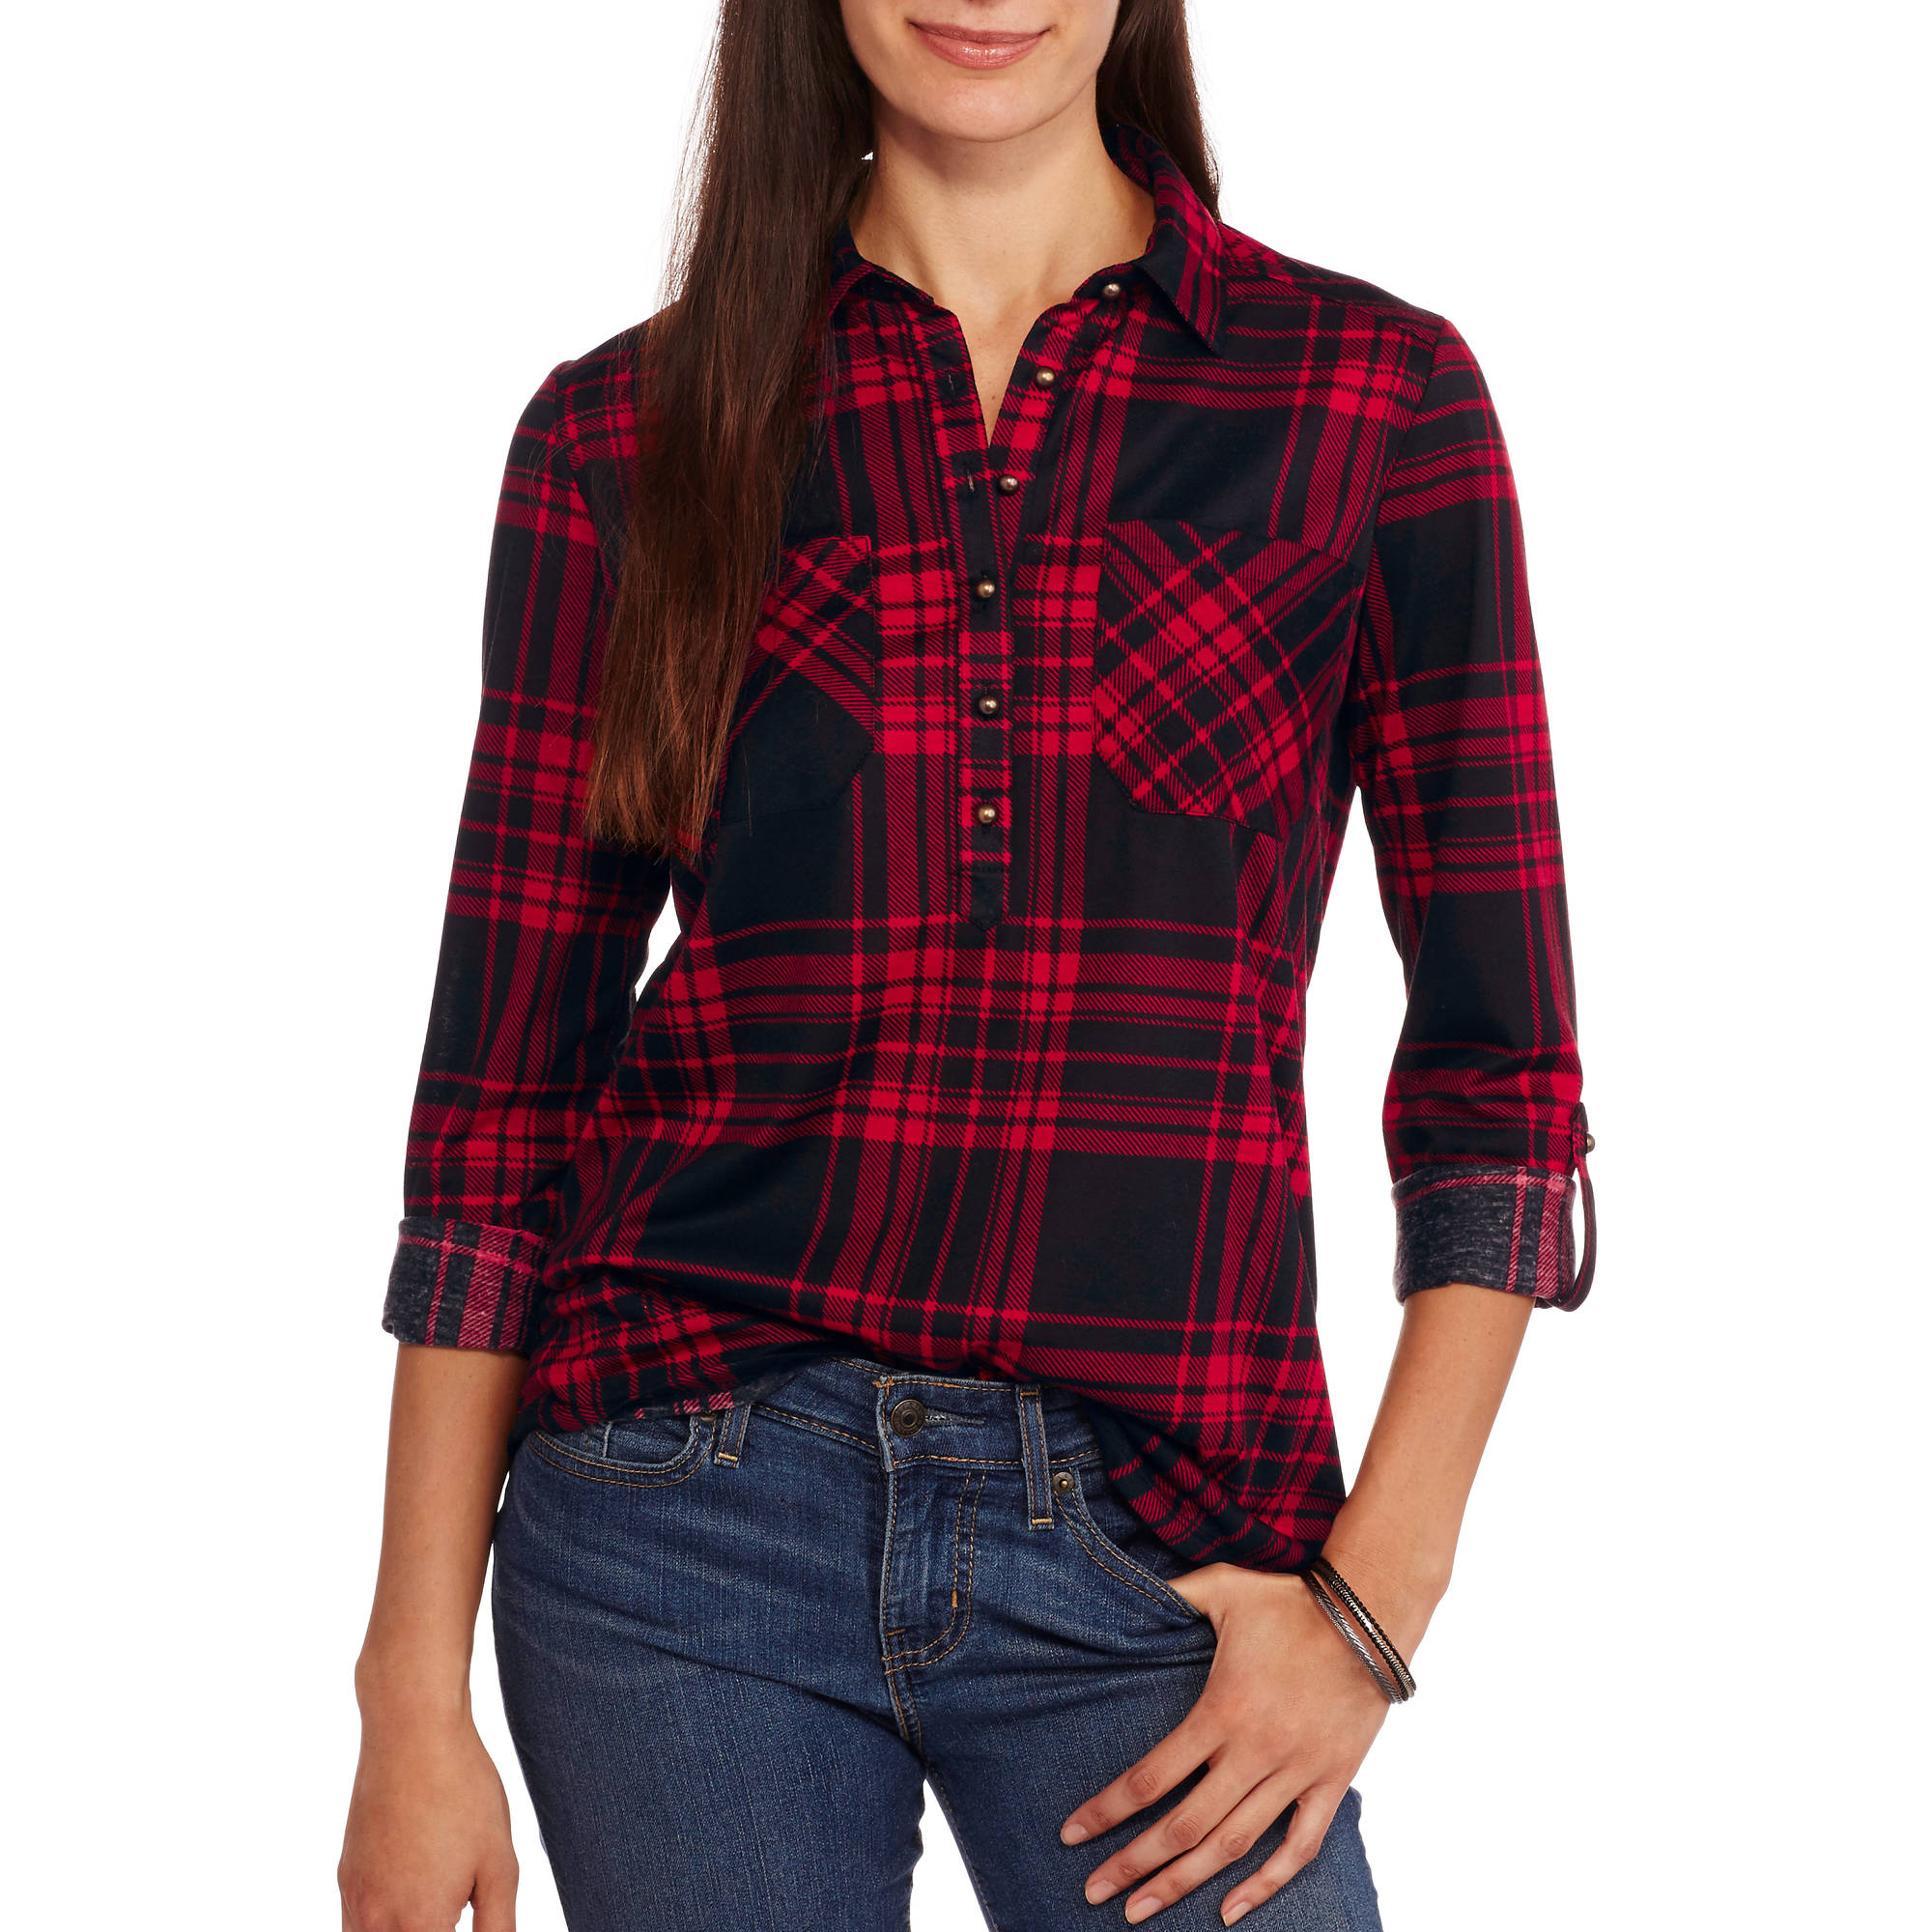 French Laundry Women's Super Soft Knit Popover Plaid Tunic